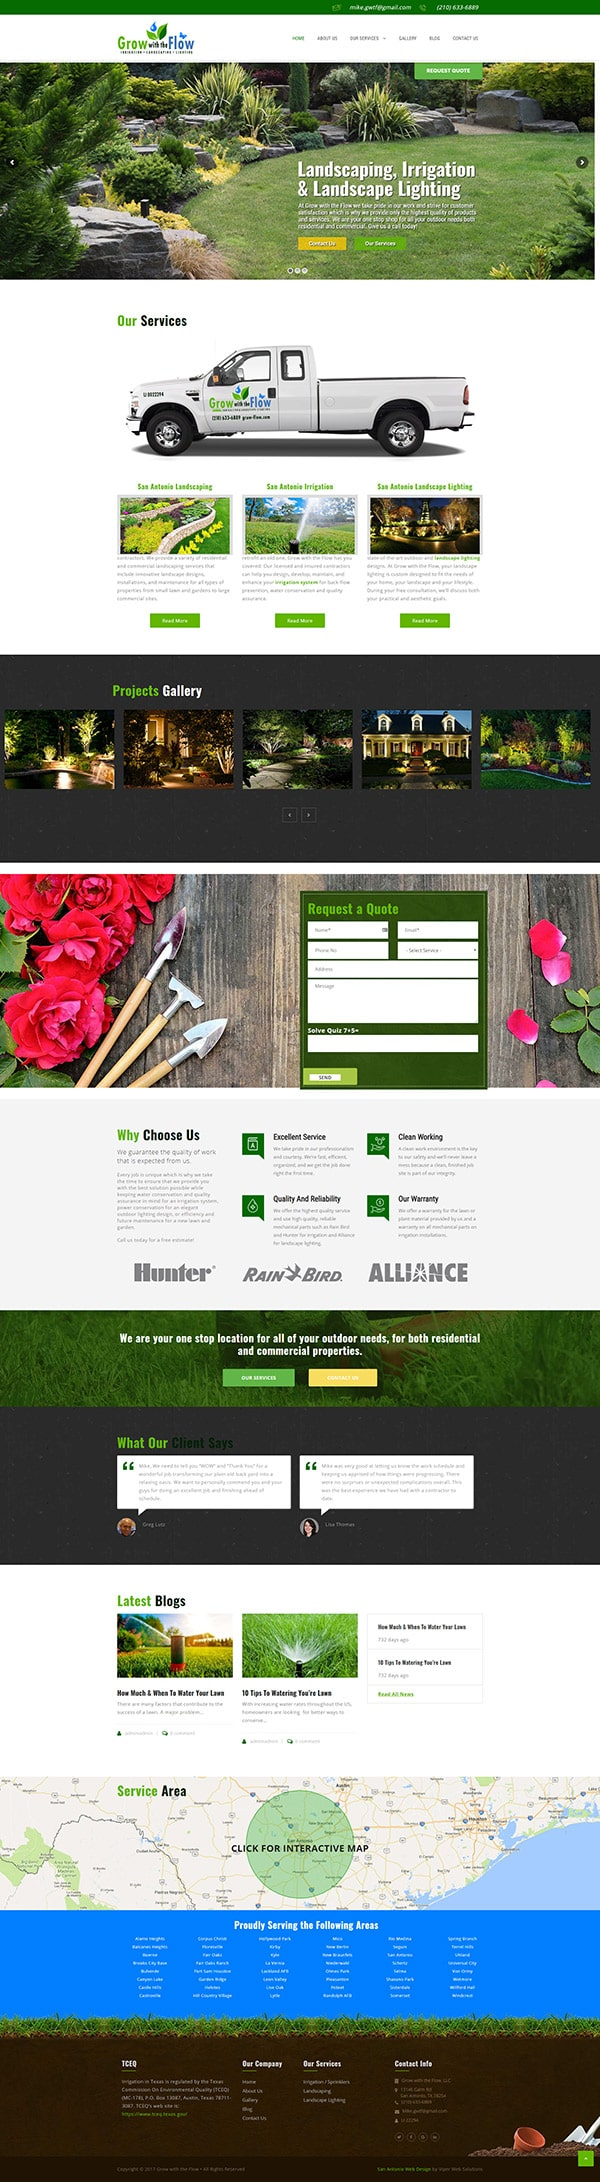 San Antonio Web Design - Grow With The Flow